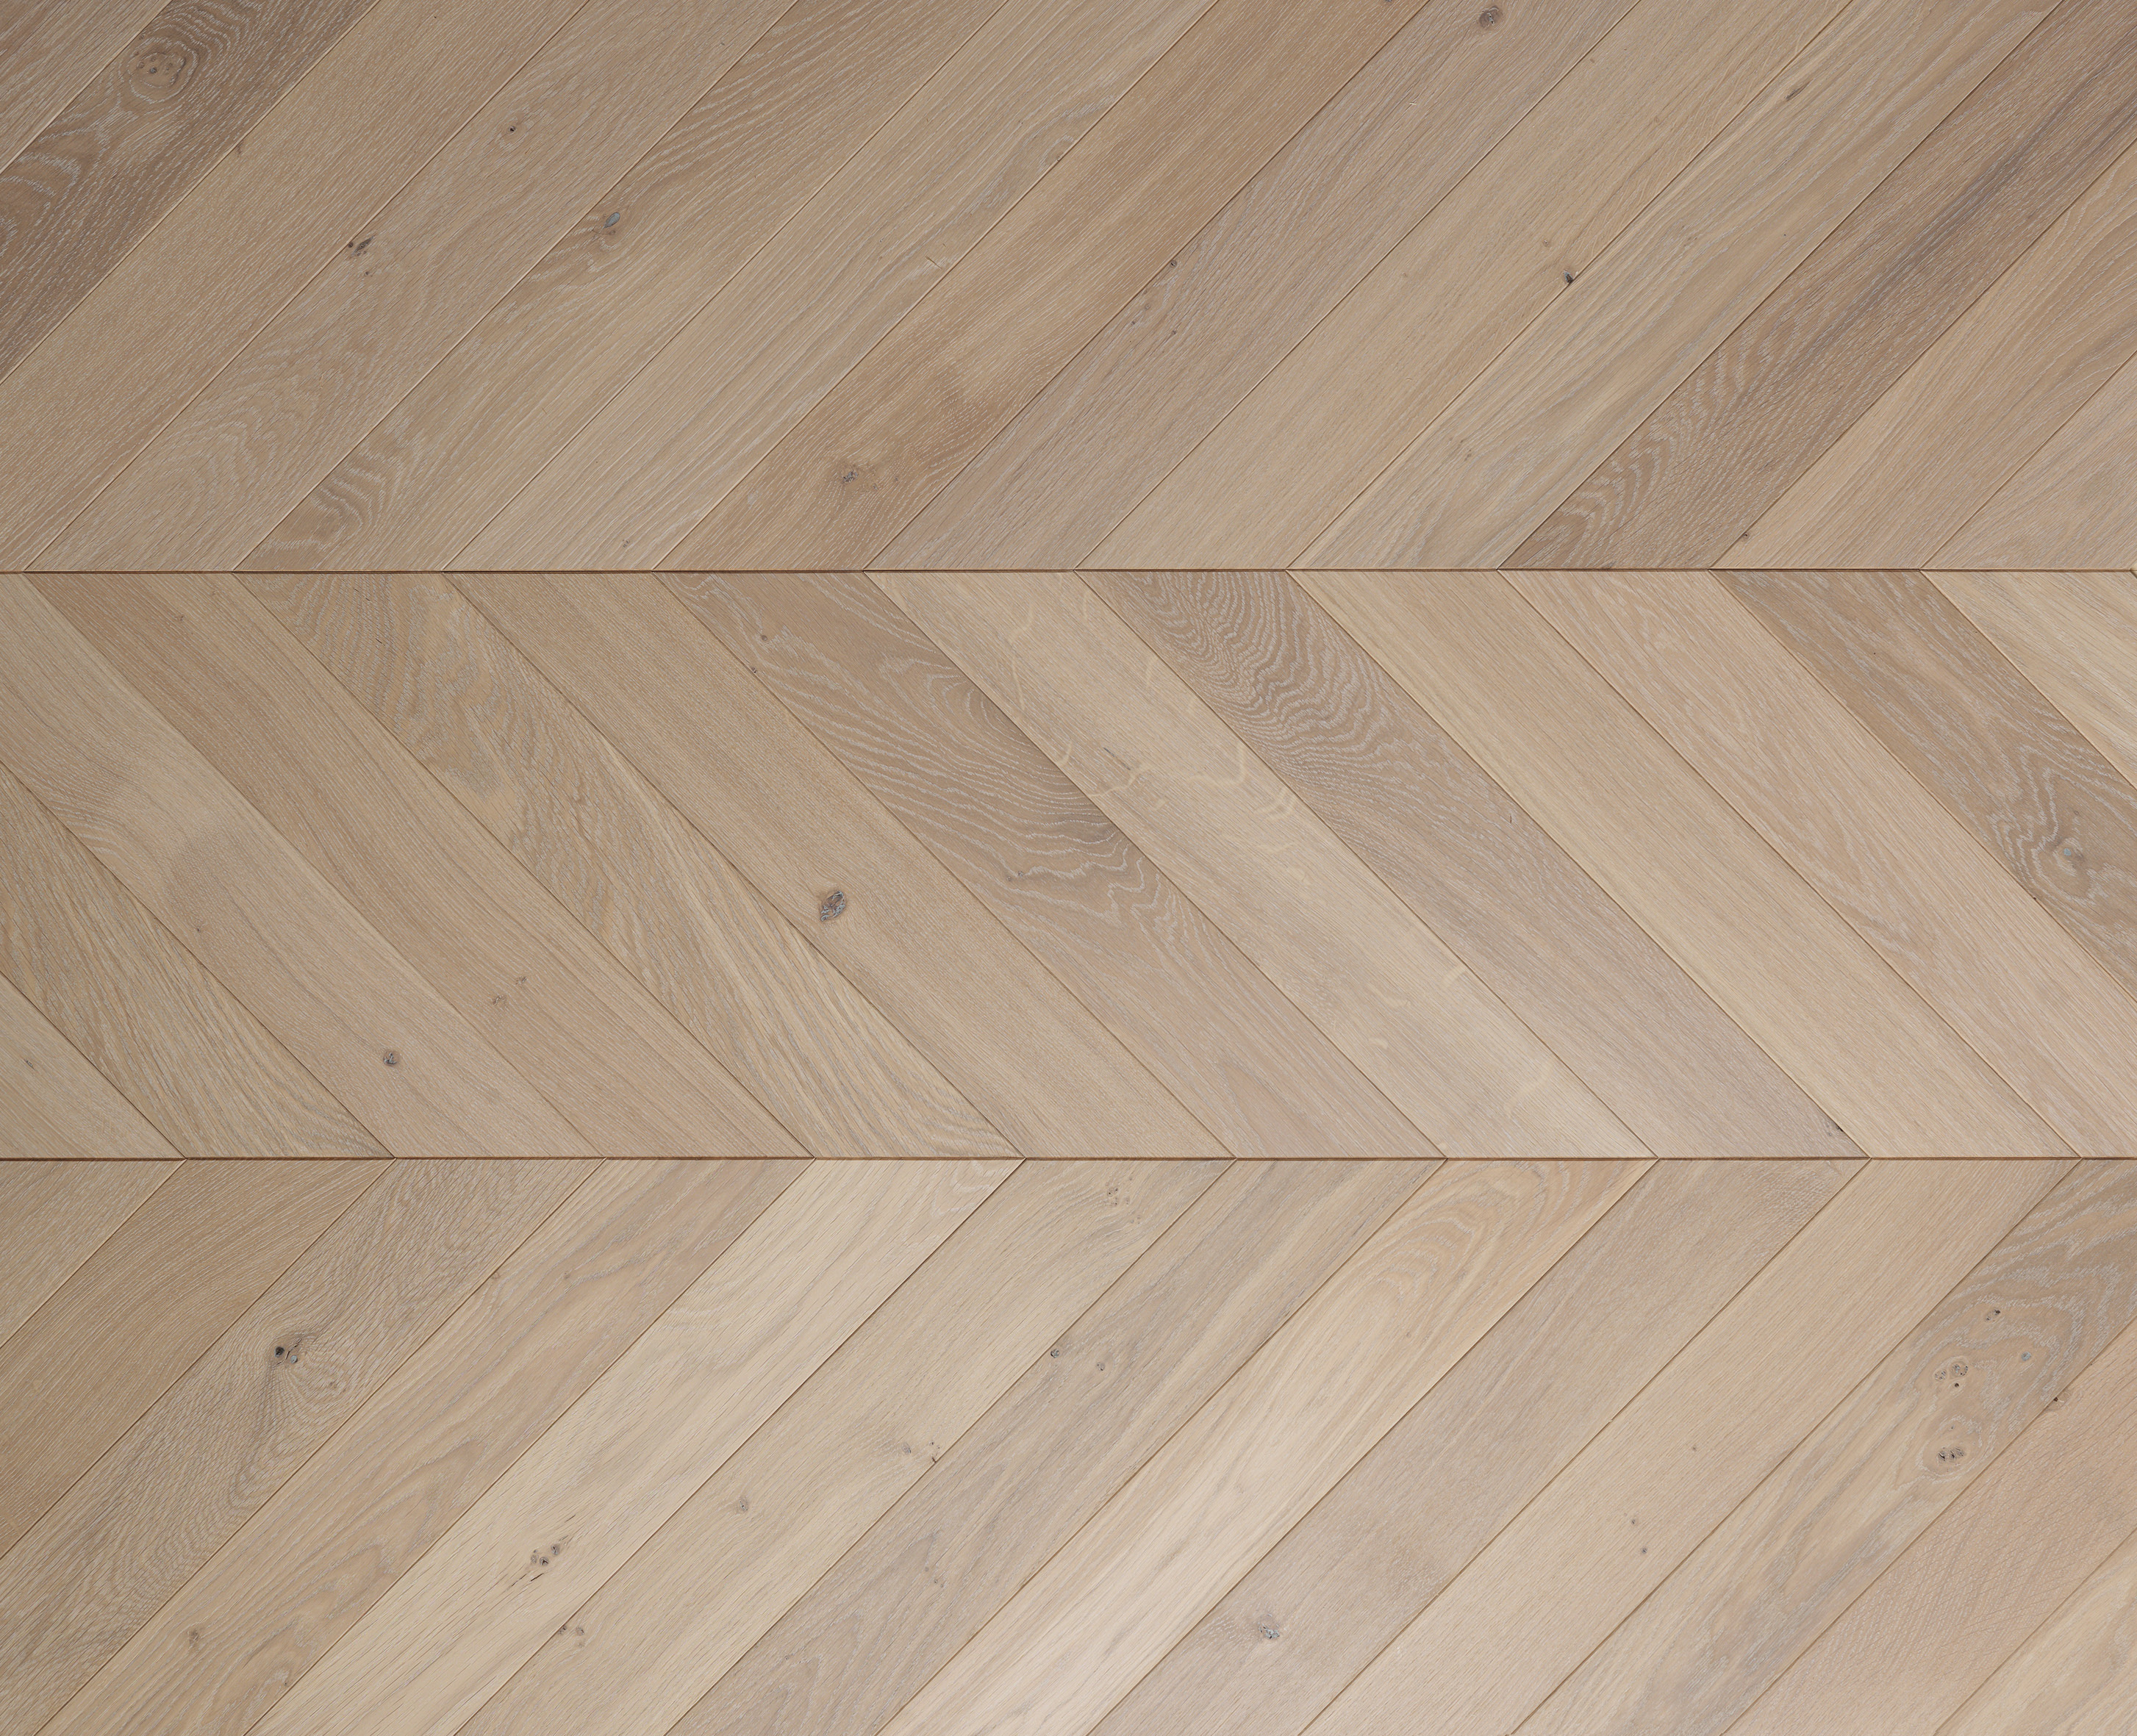 floor french oak authentic tufeau chevron 90 engineered wood floor